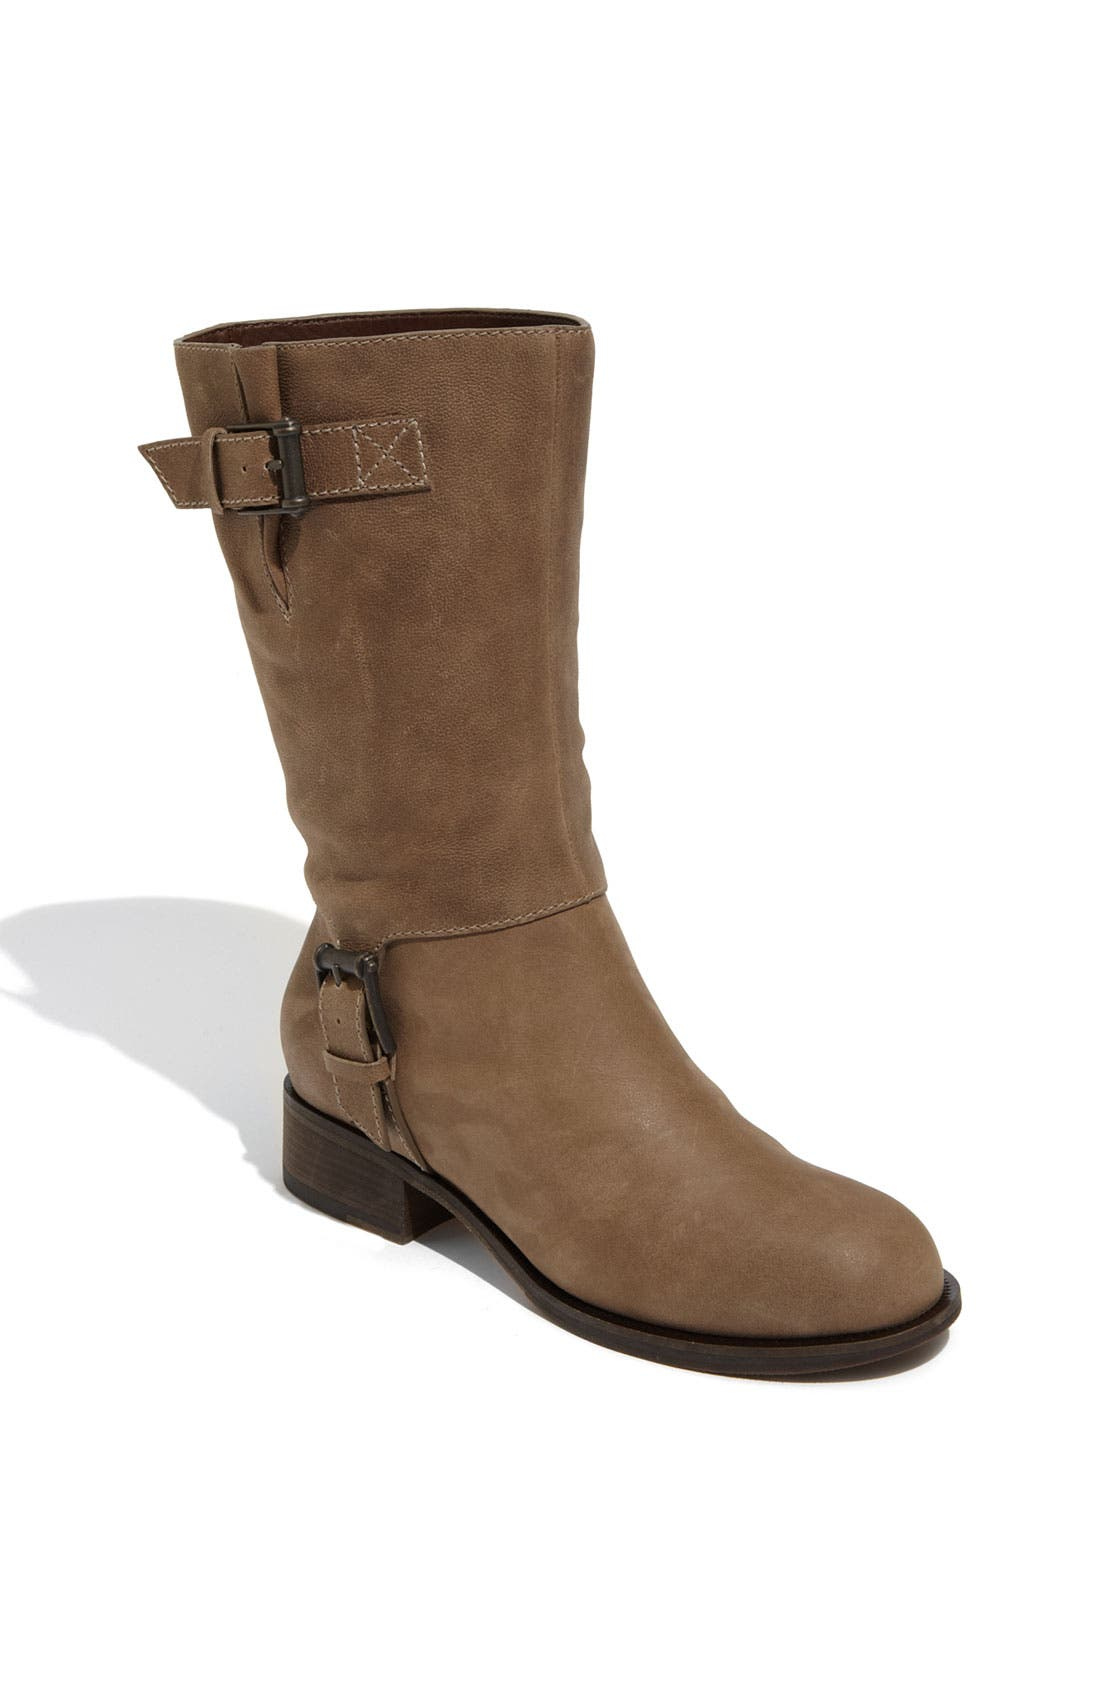 Alternate Image 1 Selected - Cole Haan 'Air Leora' Mid Calf Leather Boot